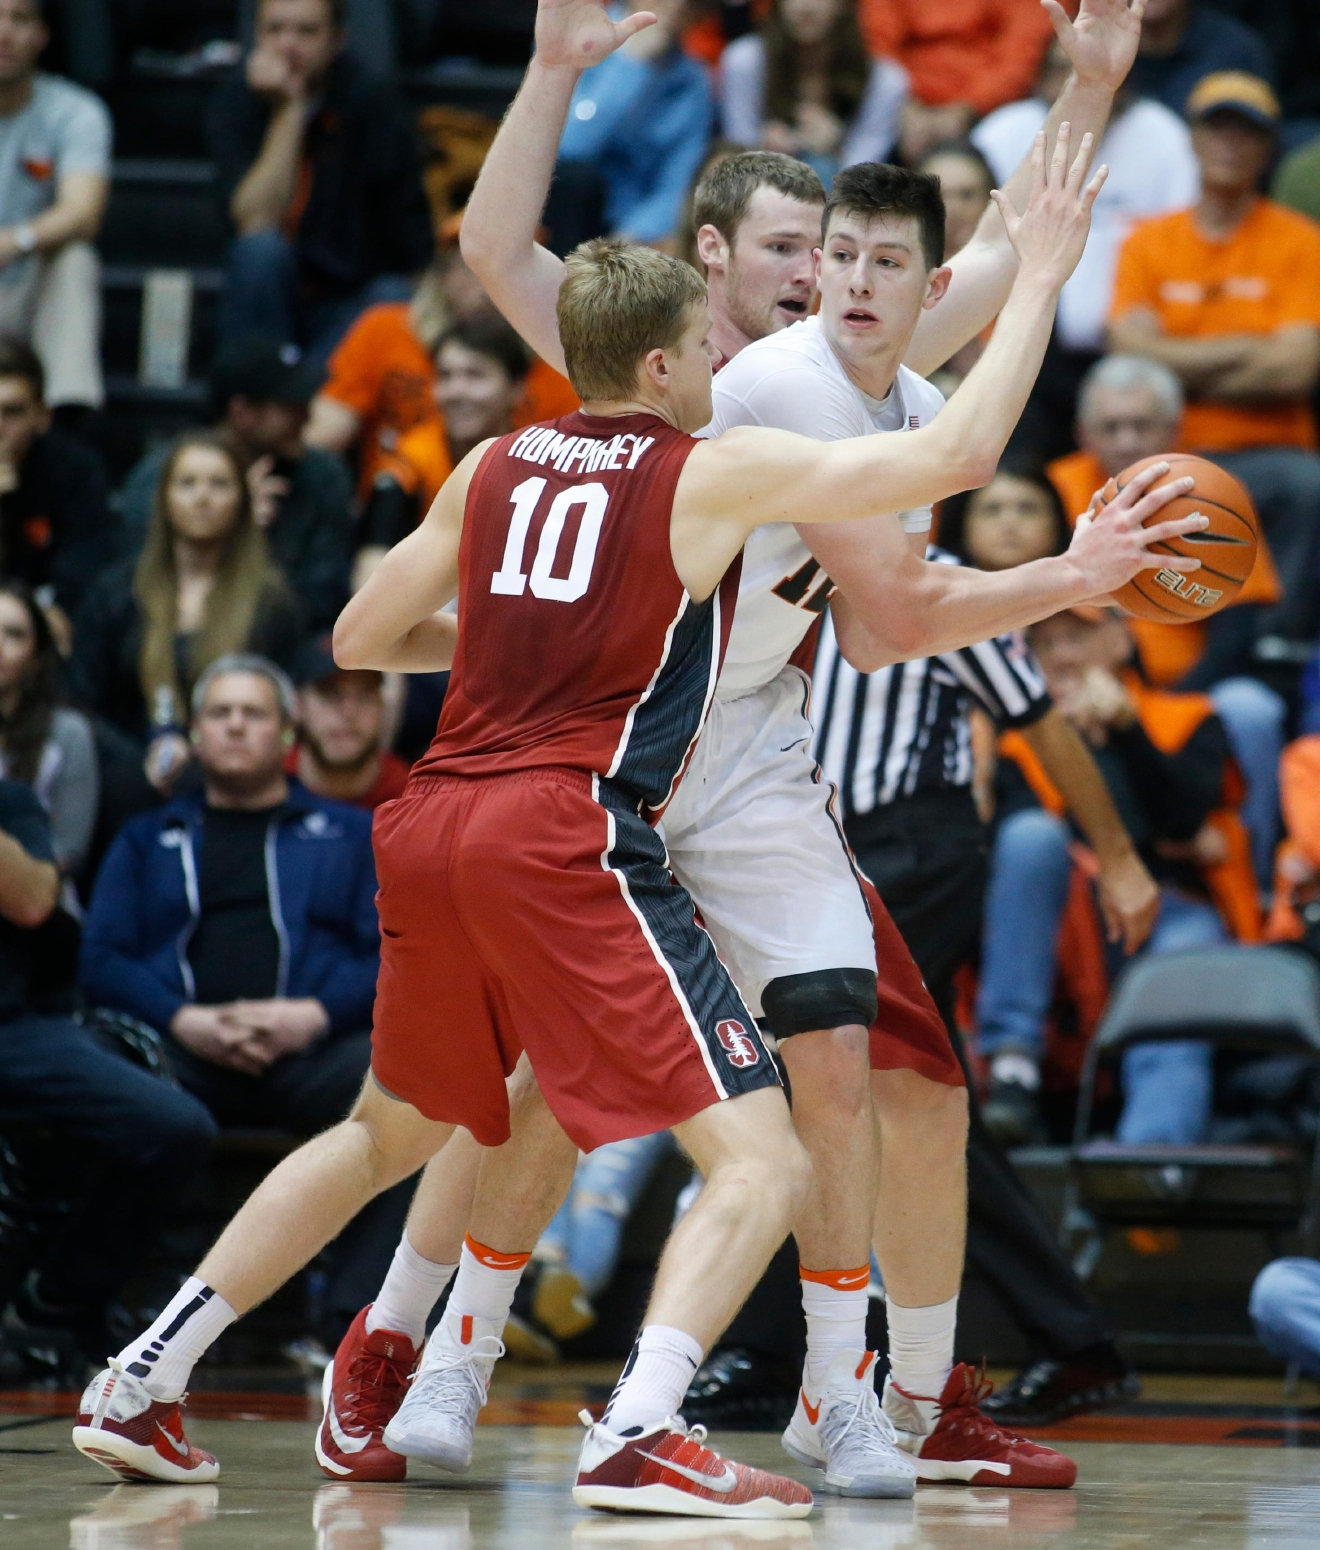 Oregon State's Drew Eubanks is double-teamed by Stanford's Michael Humphrey, front, and Grant Verhoeven, rear, during the second half of an NCAA college basketball game in Corvallis, Ore., Thursday, Jan. 19, 2017. Stanford won 62-46. (AP Photo/Timothy J. Gonzalez)